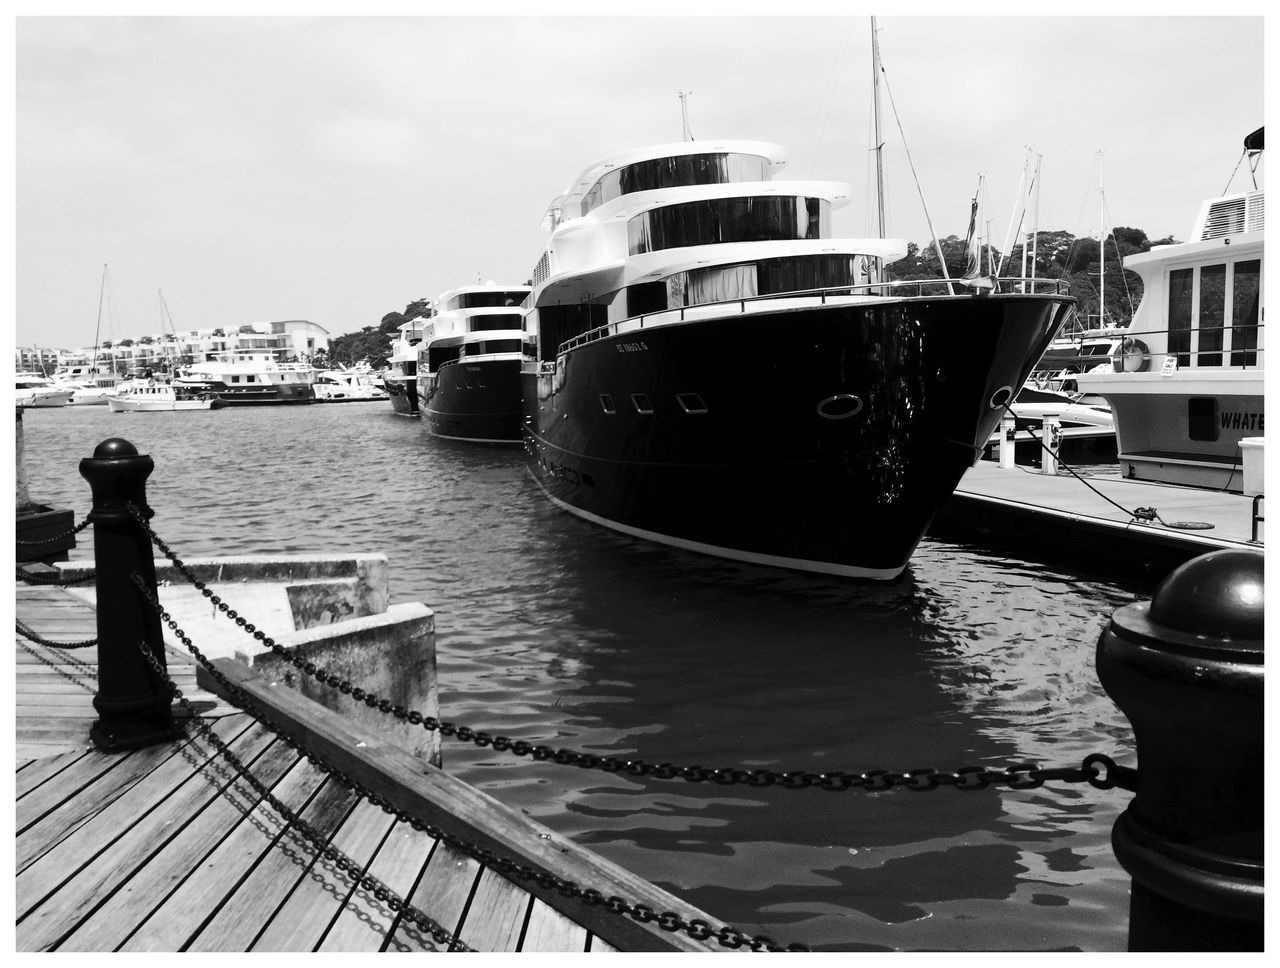 Ships Moored In River By Pier